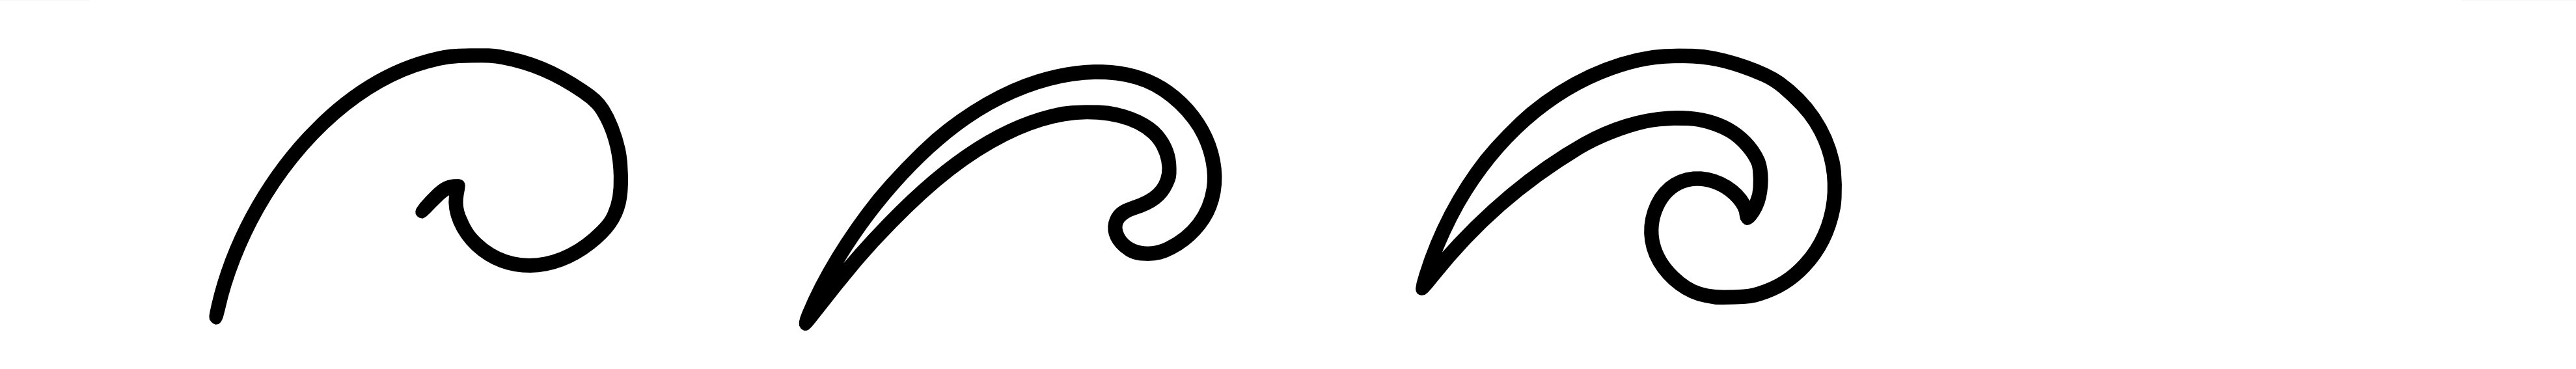 Simple koru patterns